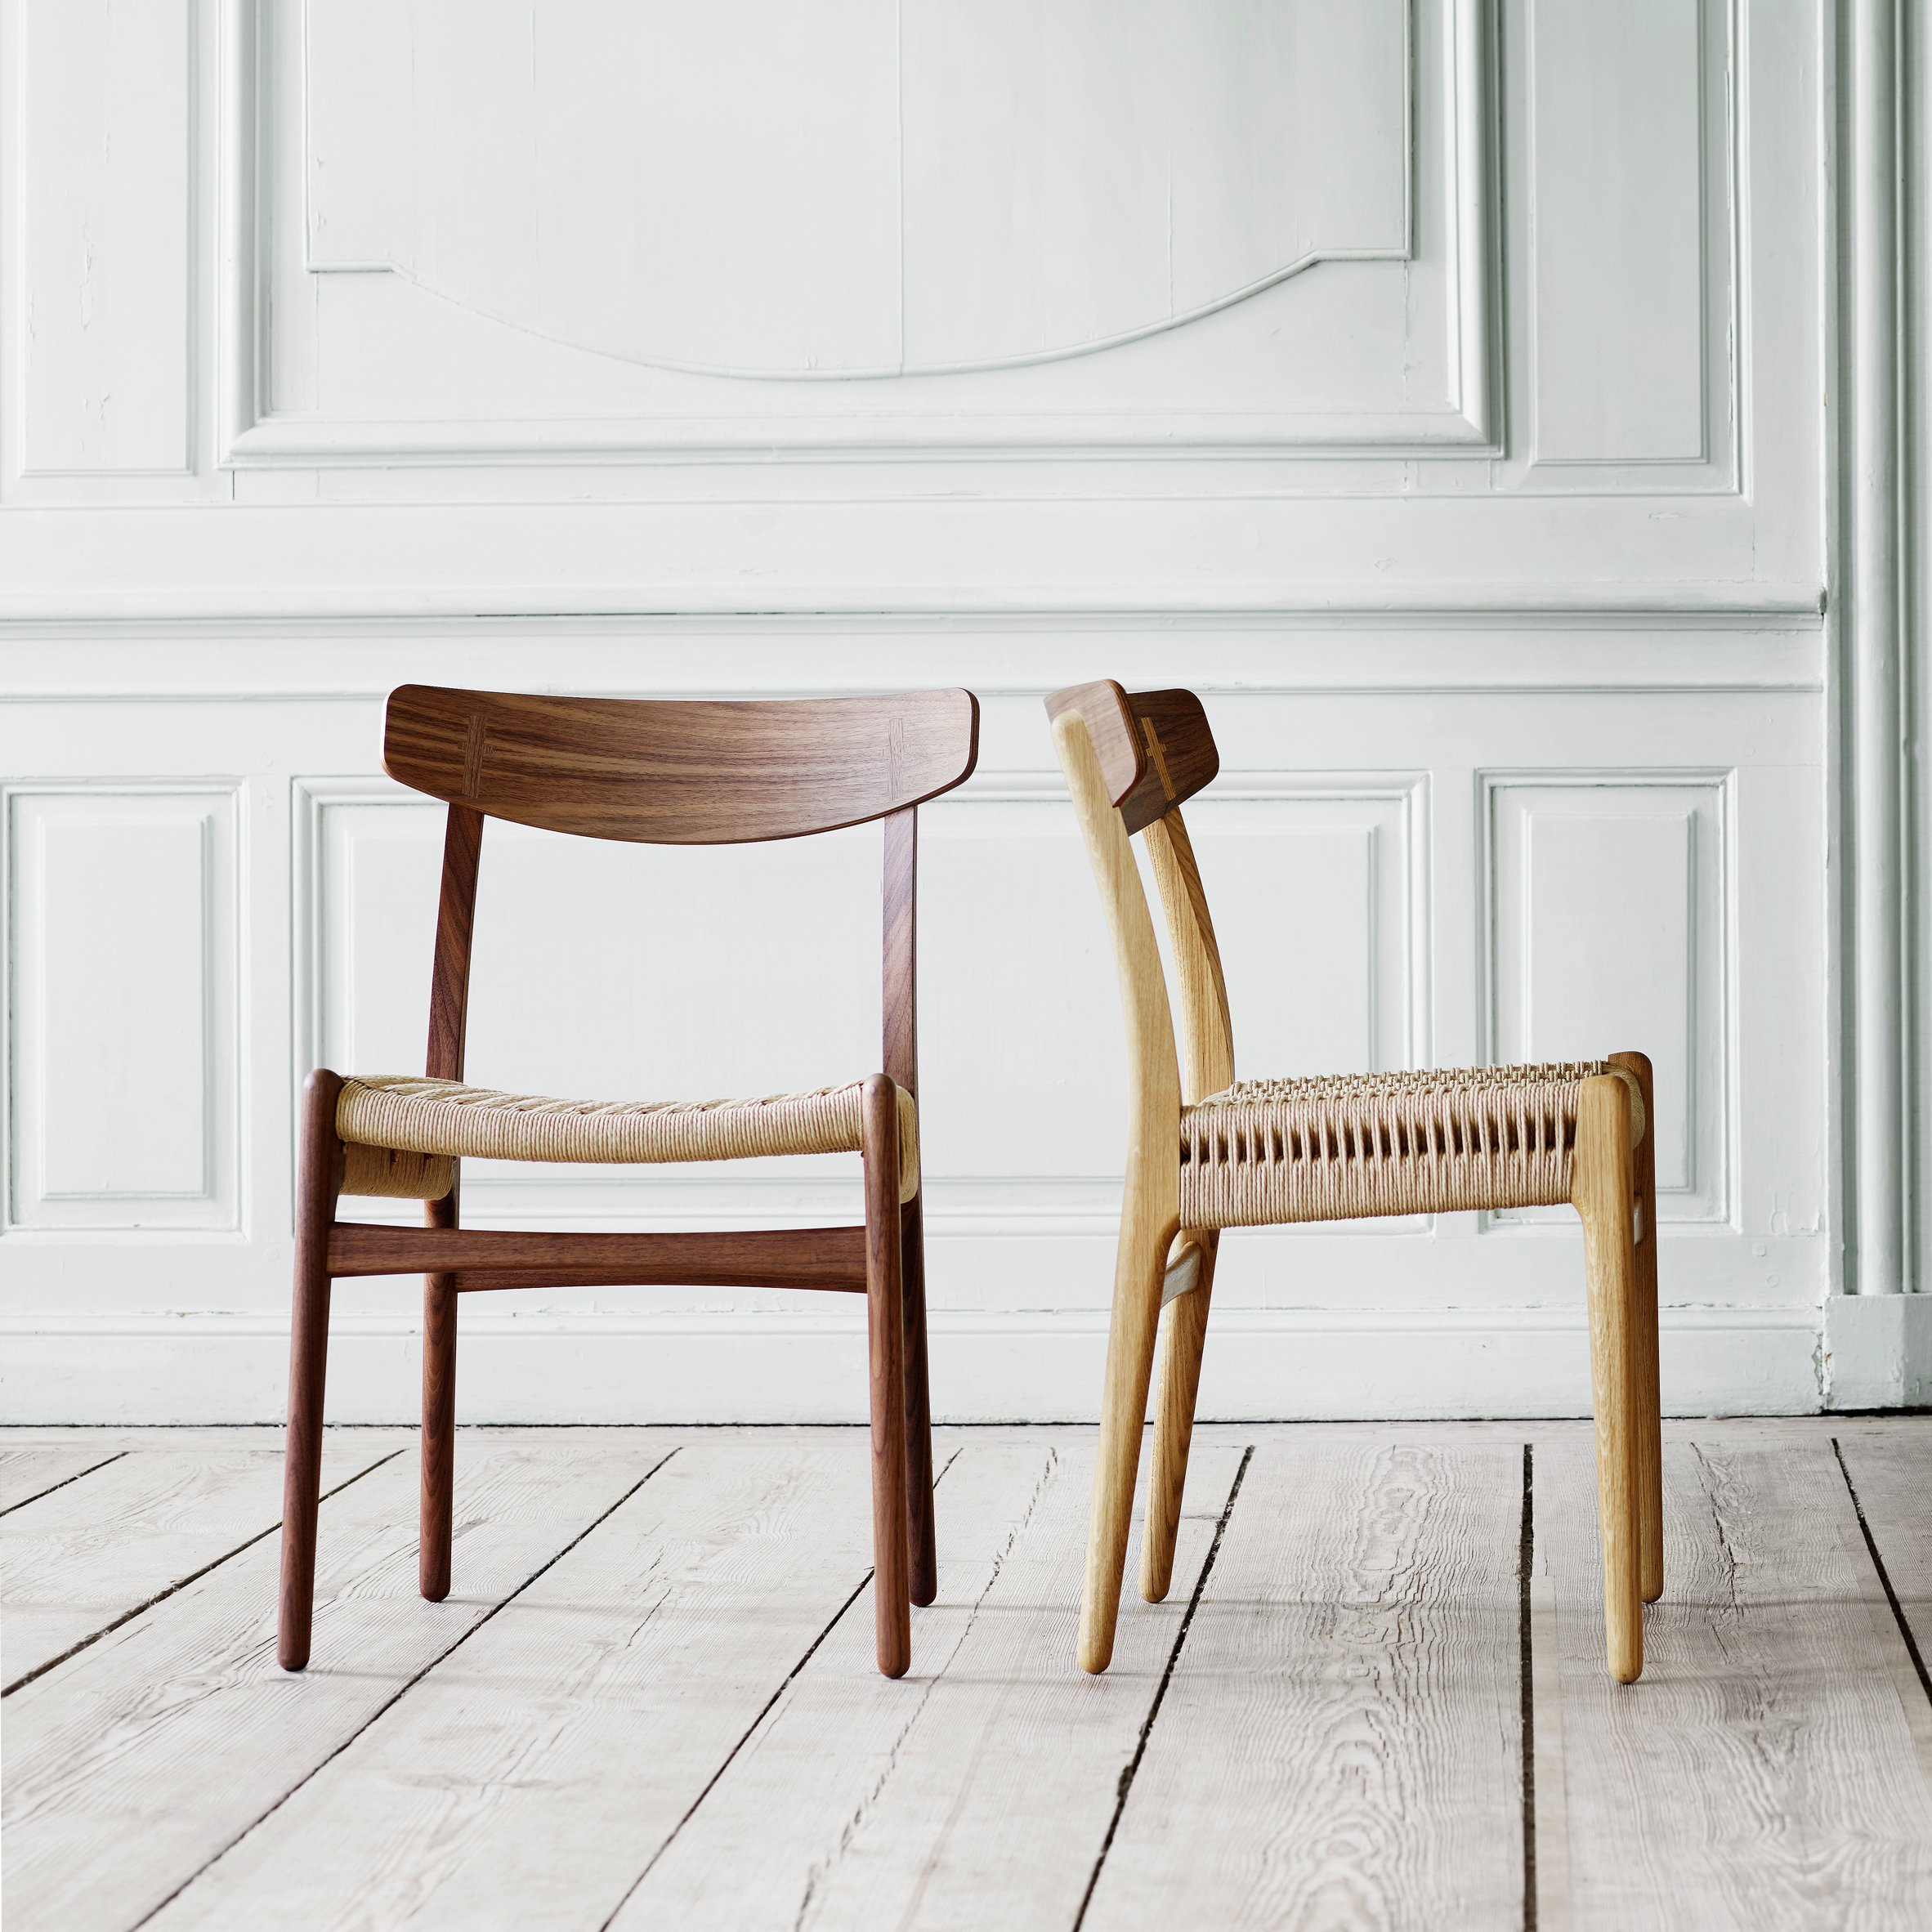 young danish designer reimagines the rocking chair at carl hansen 39 s new york showroom. Black Bedroom Furniture Sets. Home Design Ideas